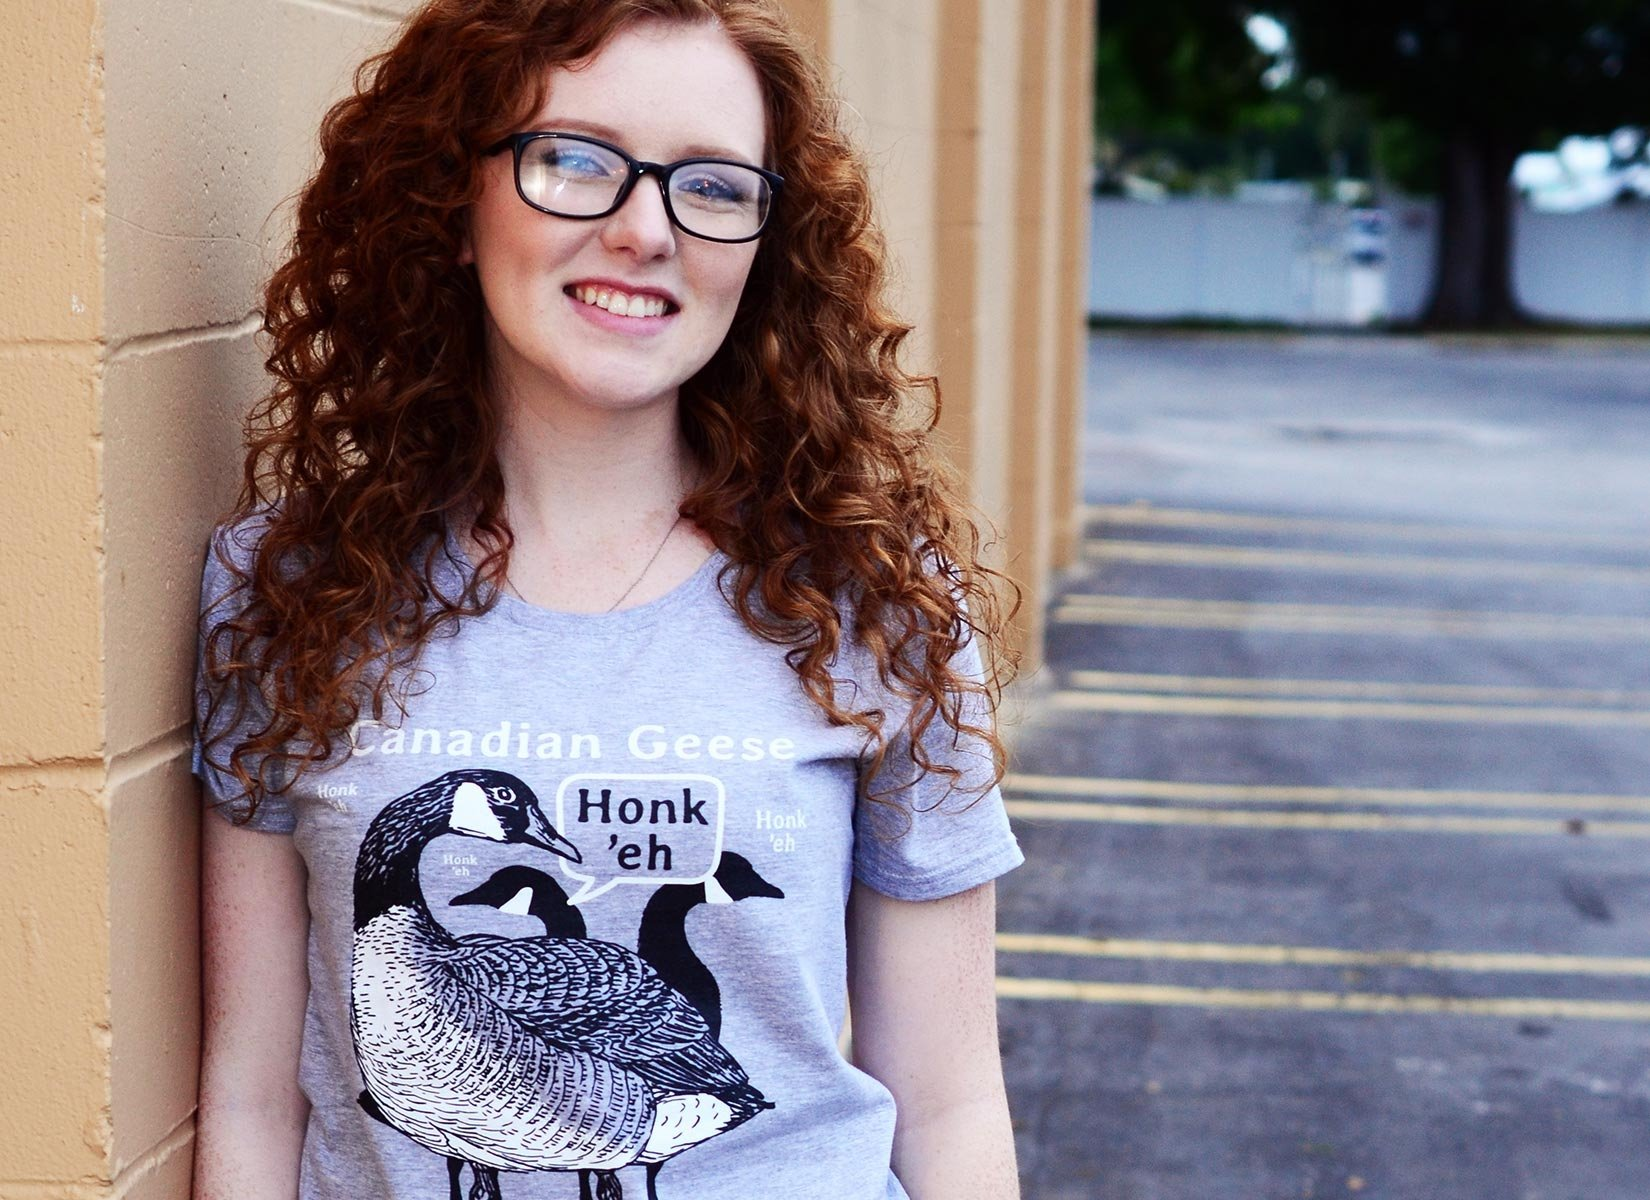 Canadian Geese on Womens T-Shirt